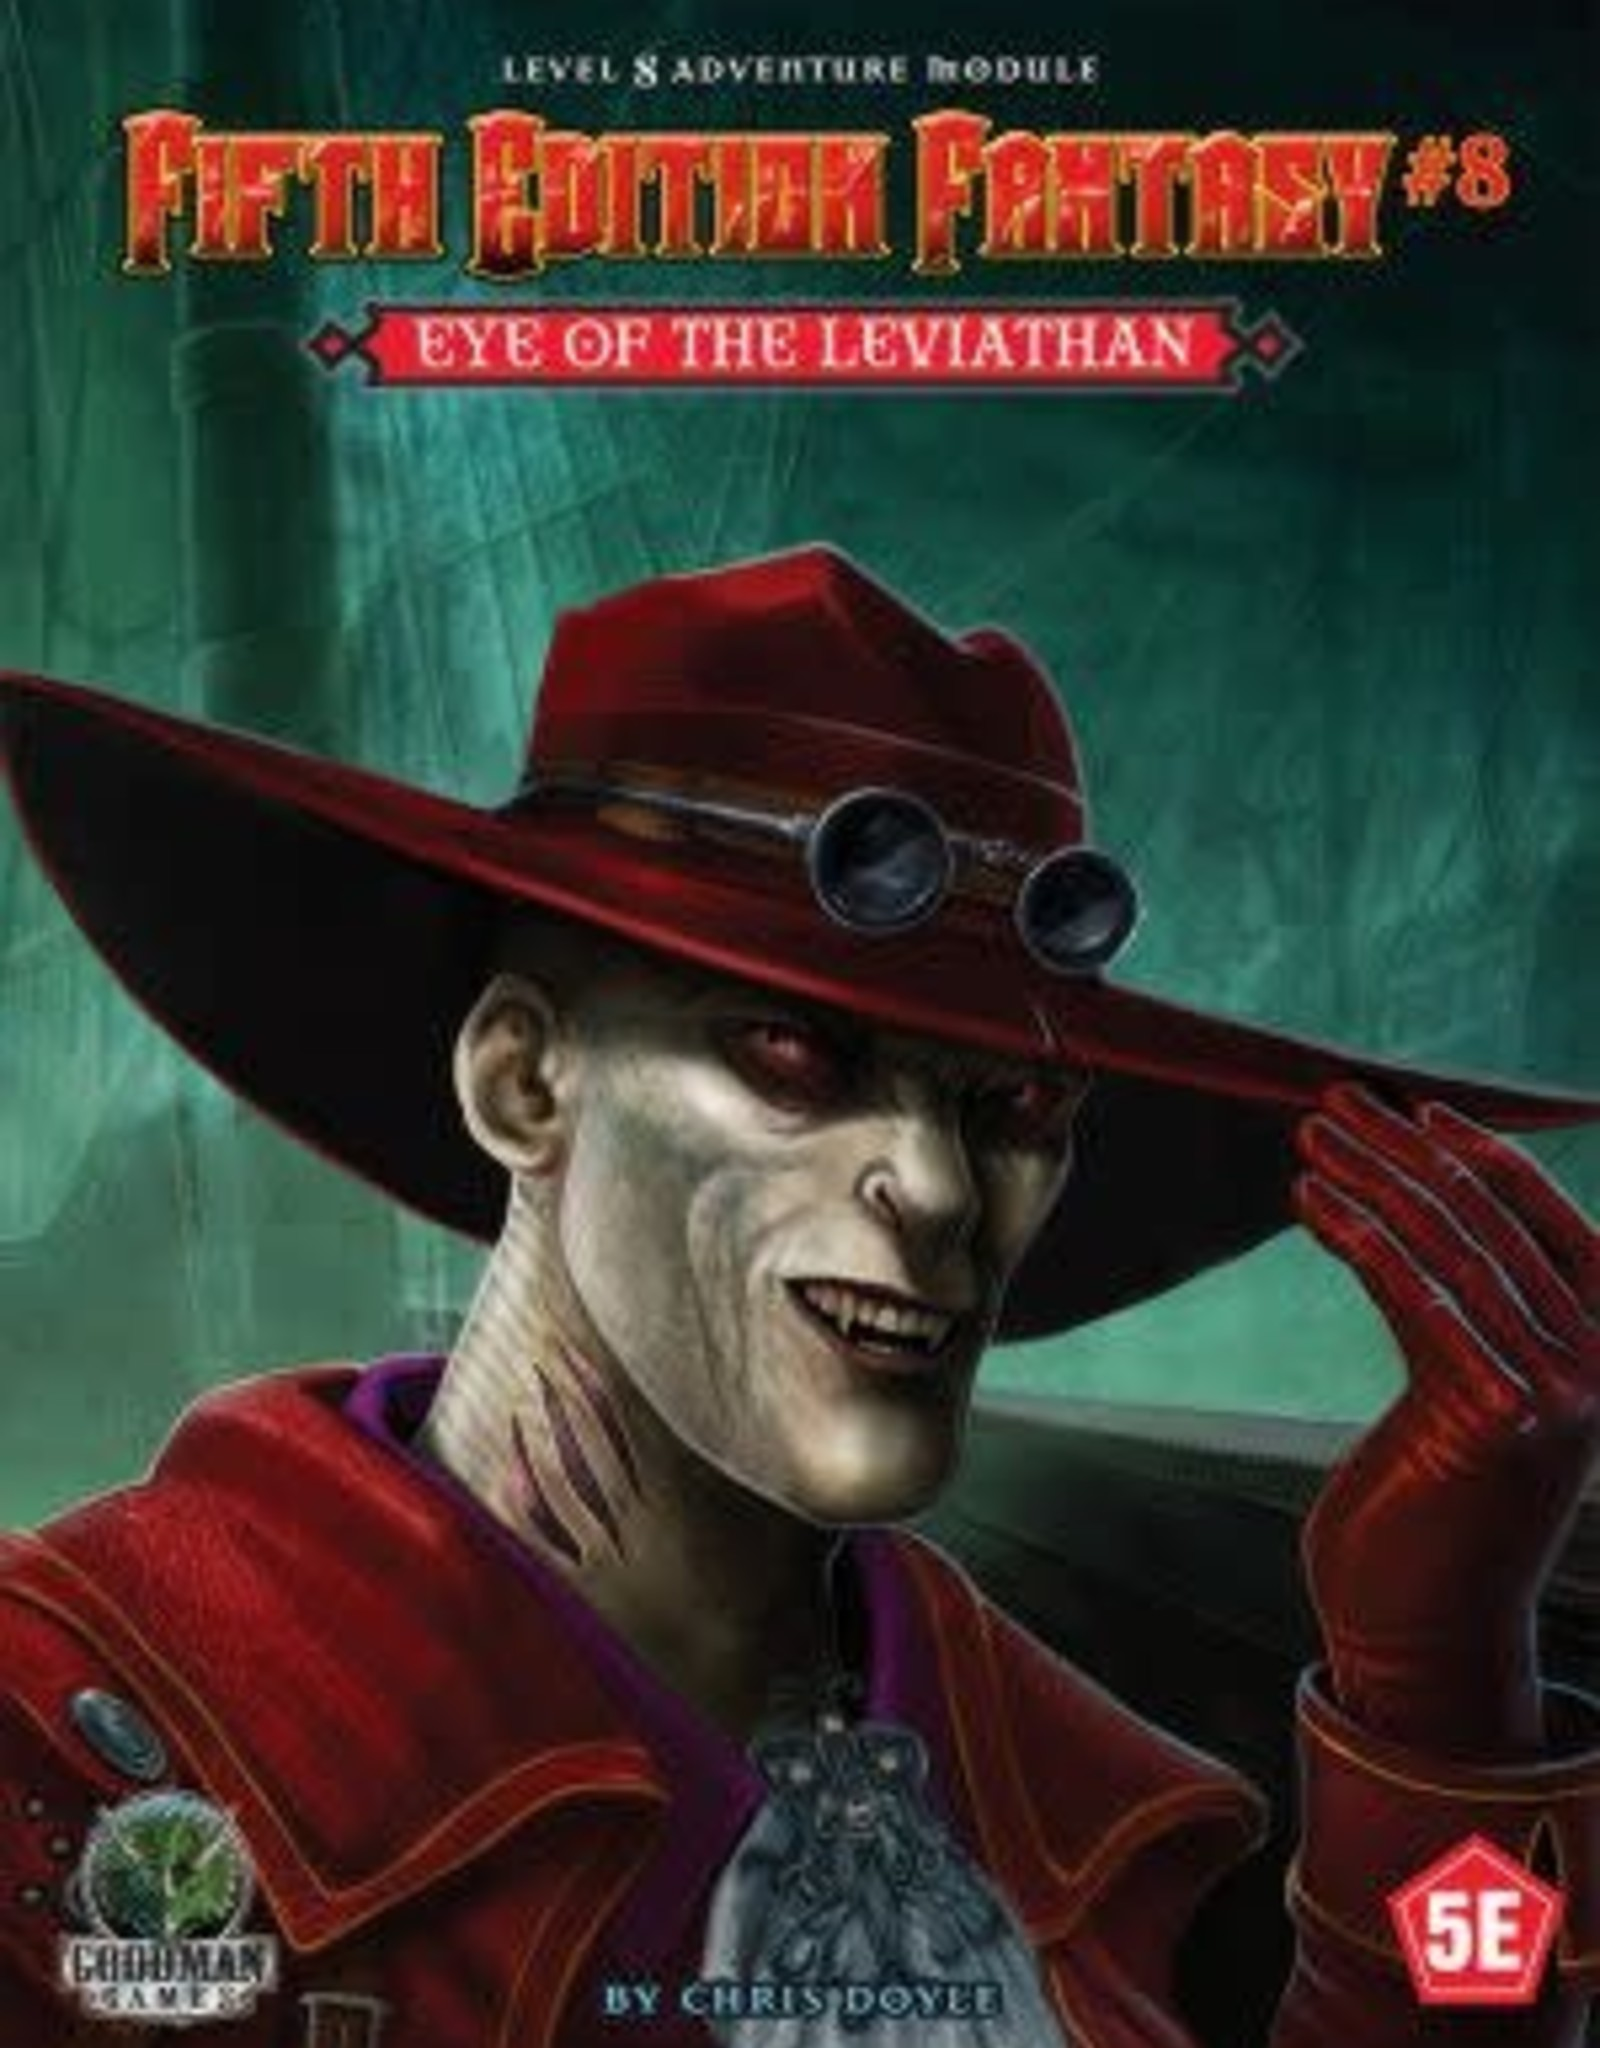 Goodman Games 5TH ED Fantasy #8: Eye Of The Leviathan